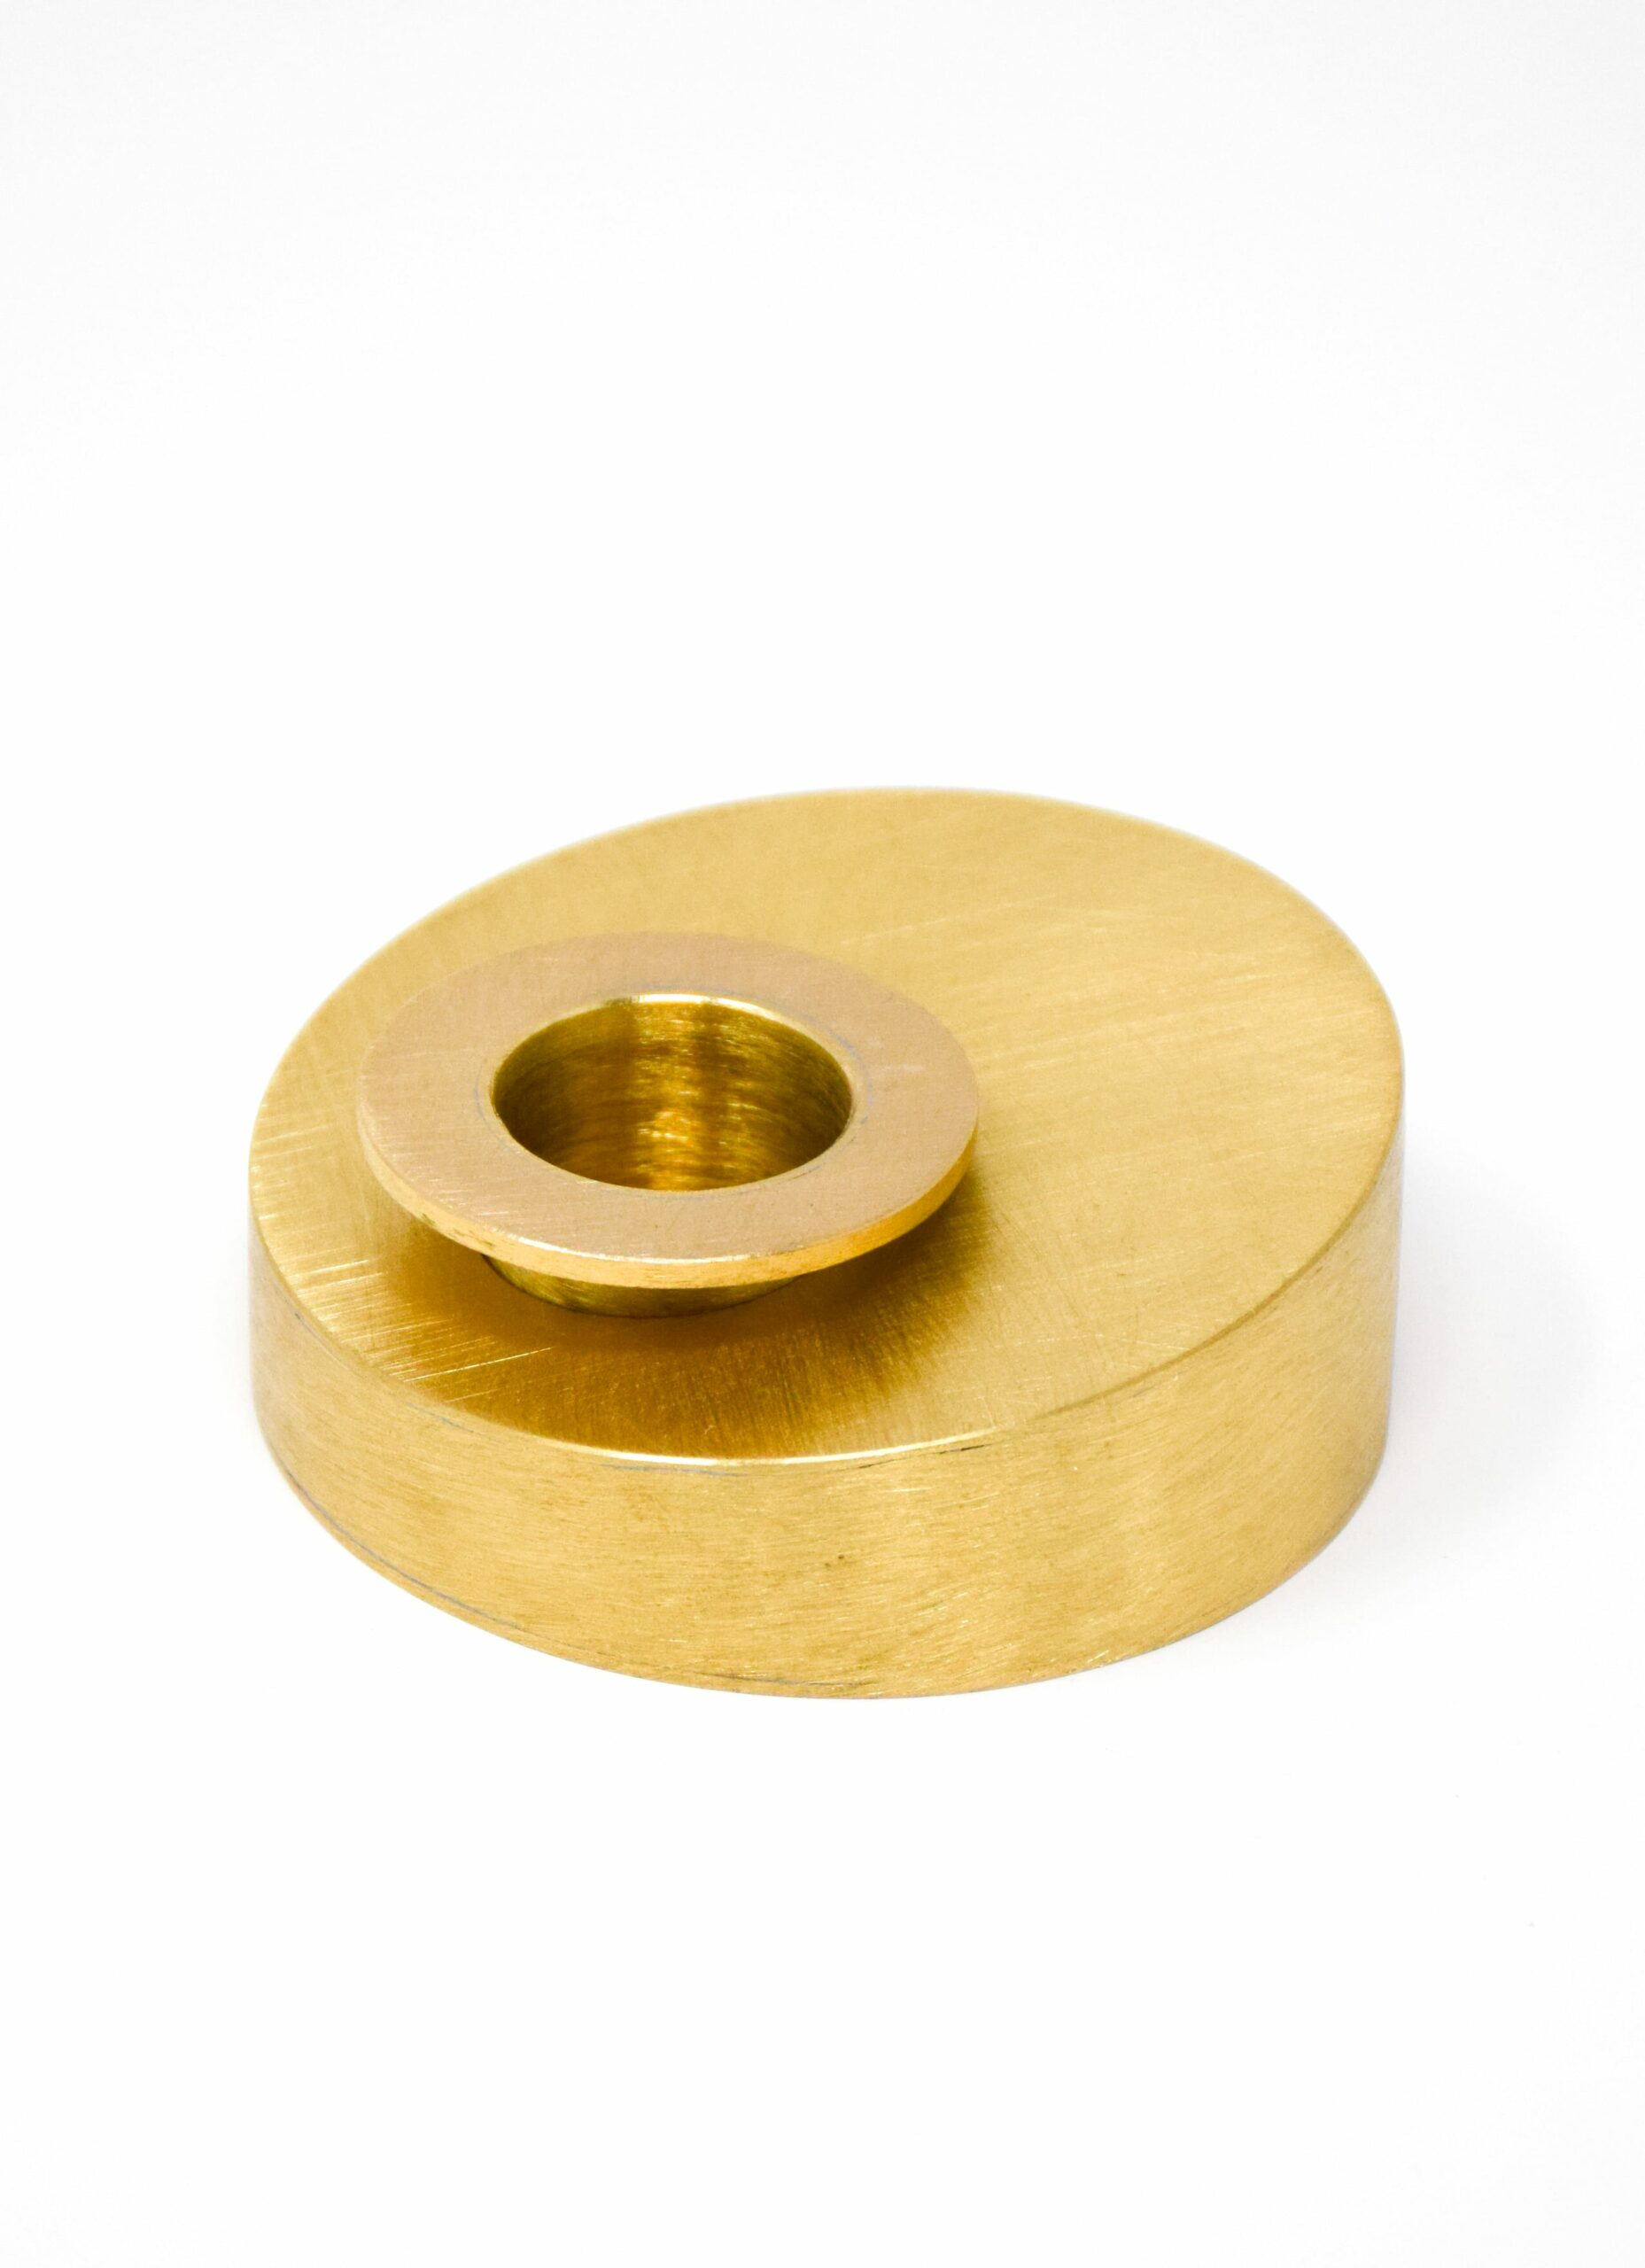 Lappalainen - Handmade Candle Holder - Matte Brass